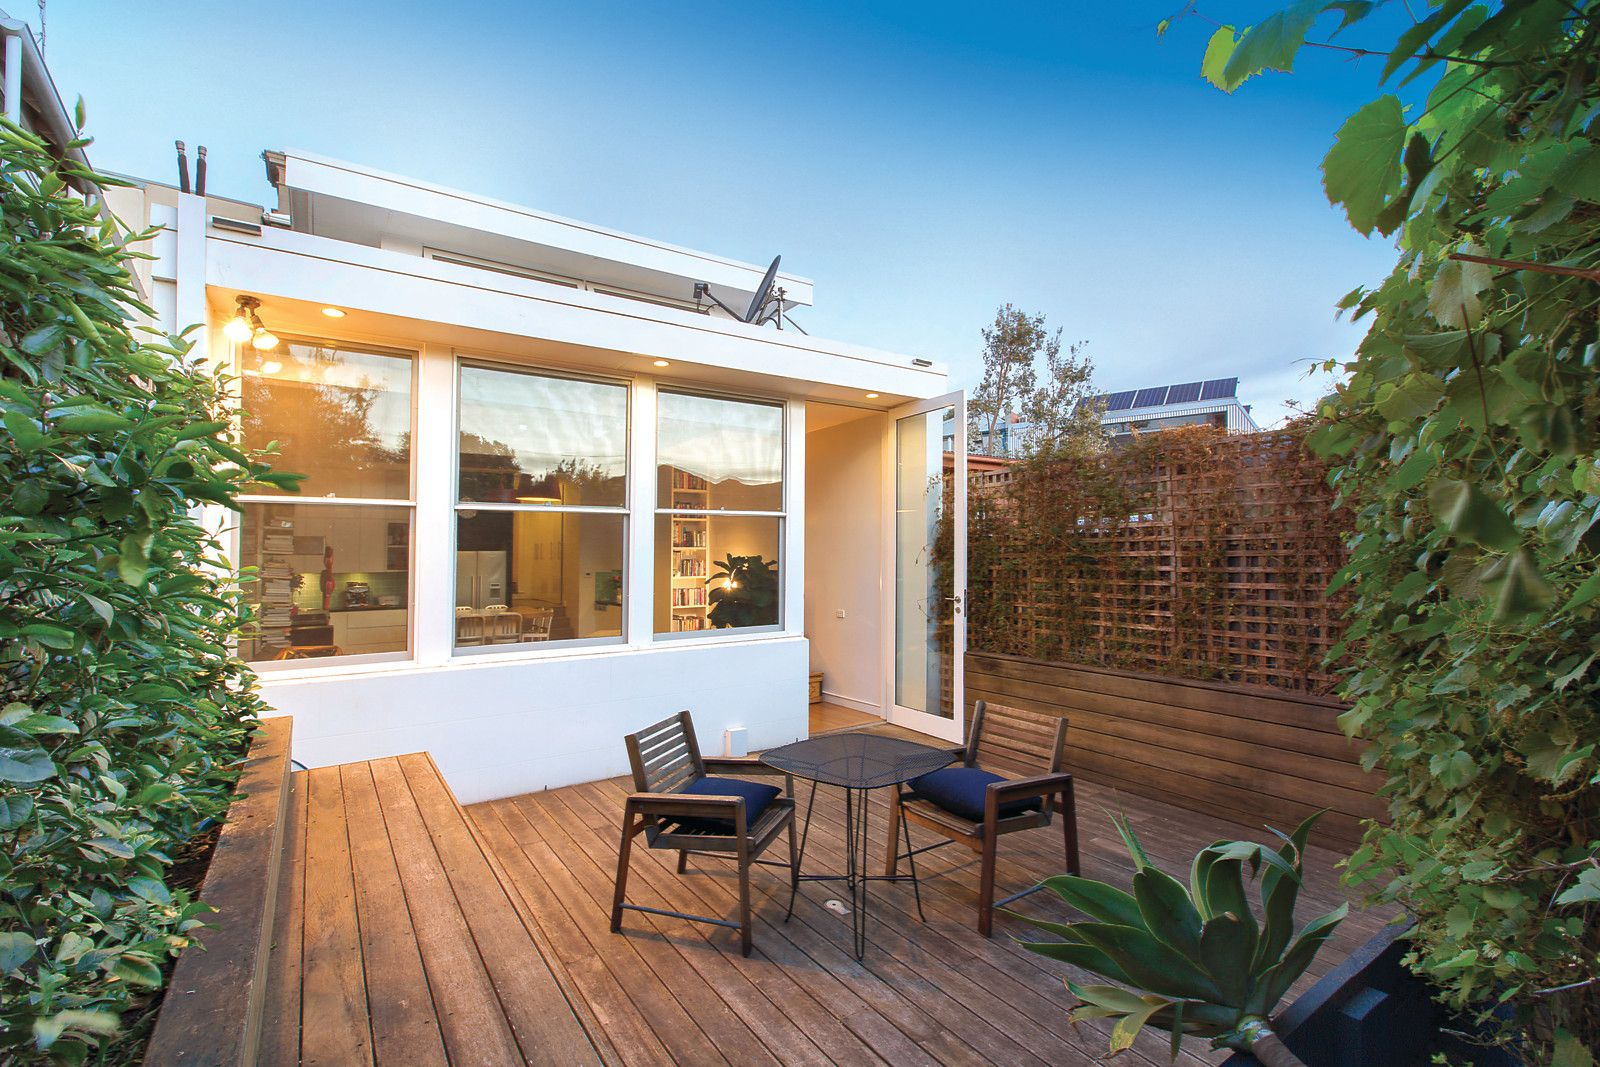 3 Bedroom House For Sale At 256 Montague Street South Melbourne Vic 3205 View Property P Os Floor Plans Local School Catchments Lots More On